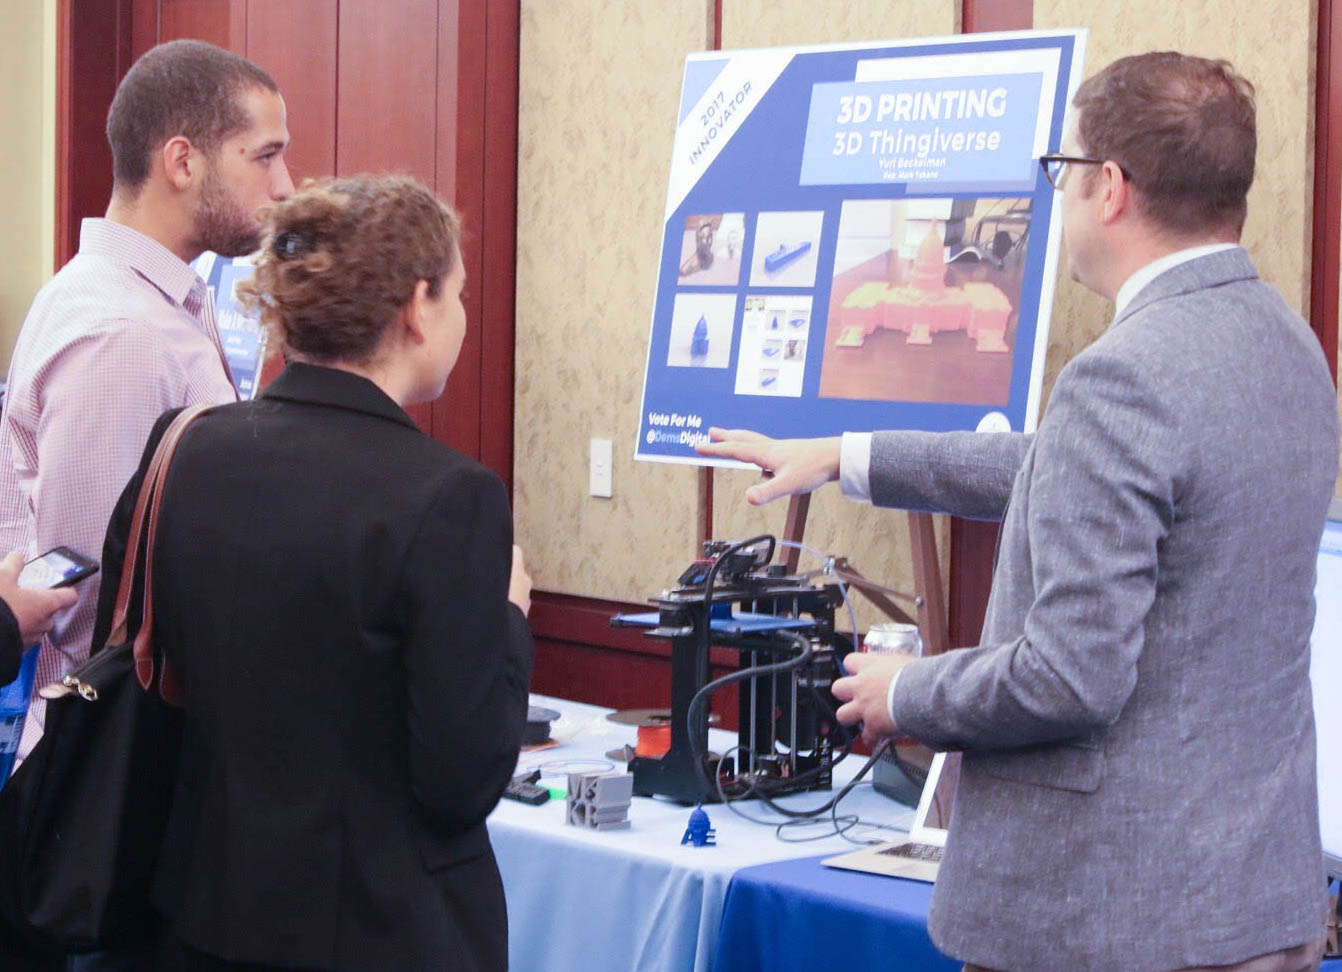 Deputy Chief of Staff and Legislative Director Yuri Beckelman shows off his team's 3D printer at the recent Digital Day on the Hill.